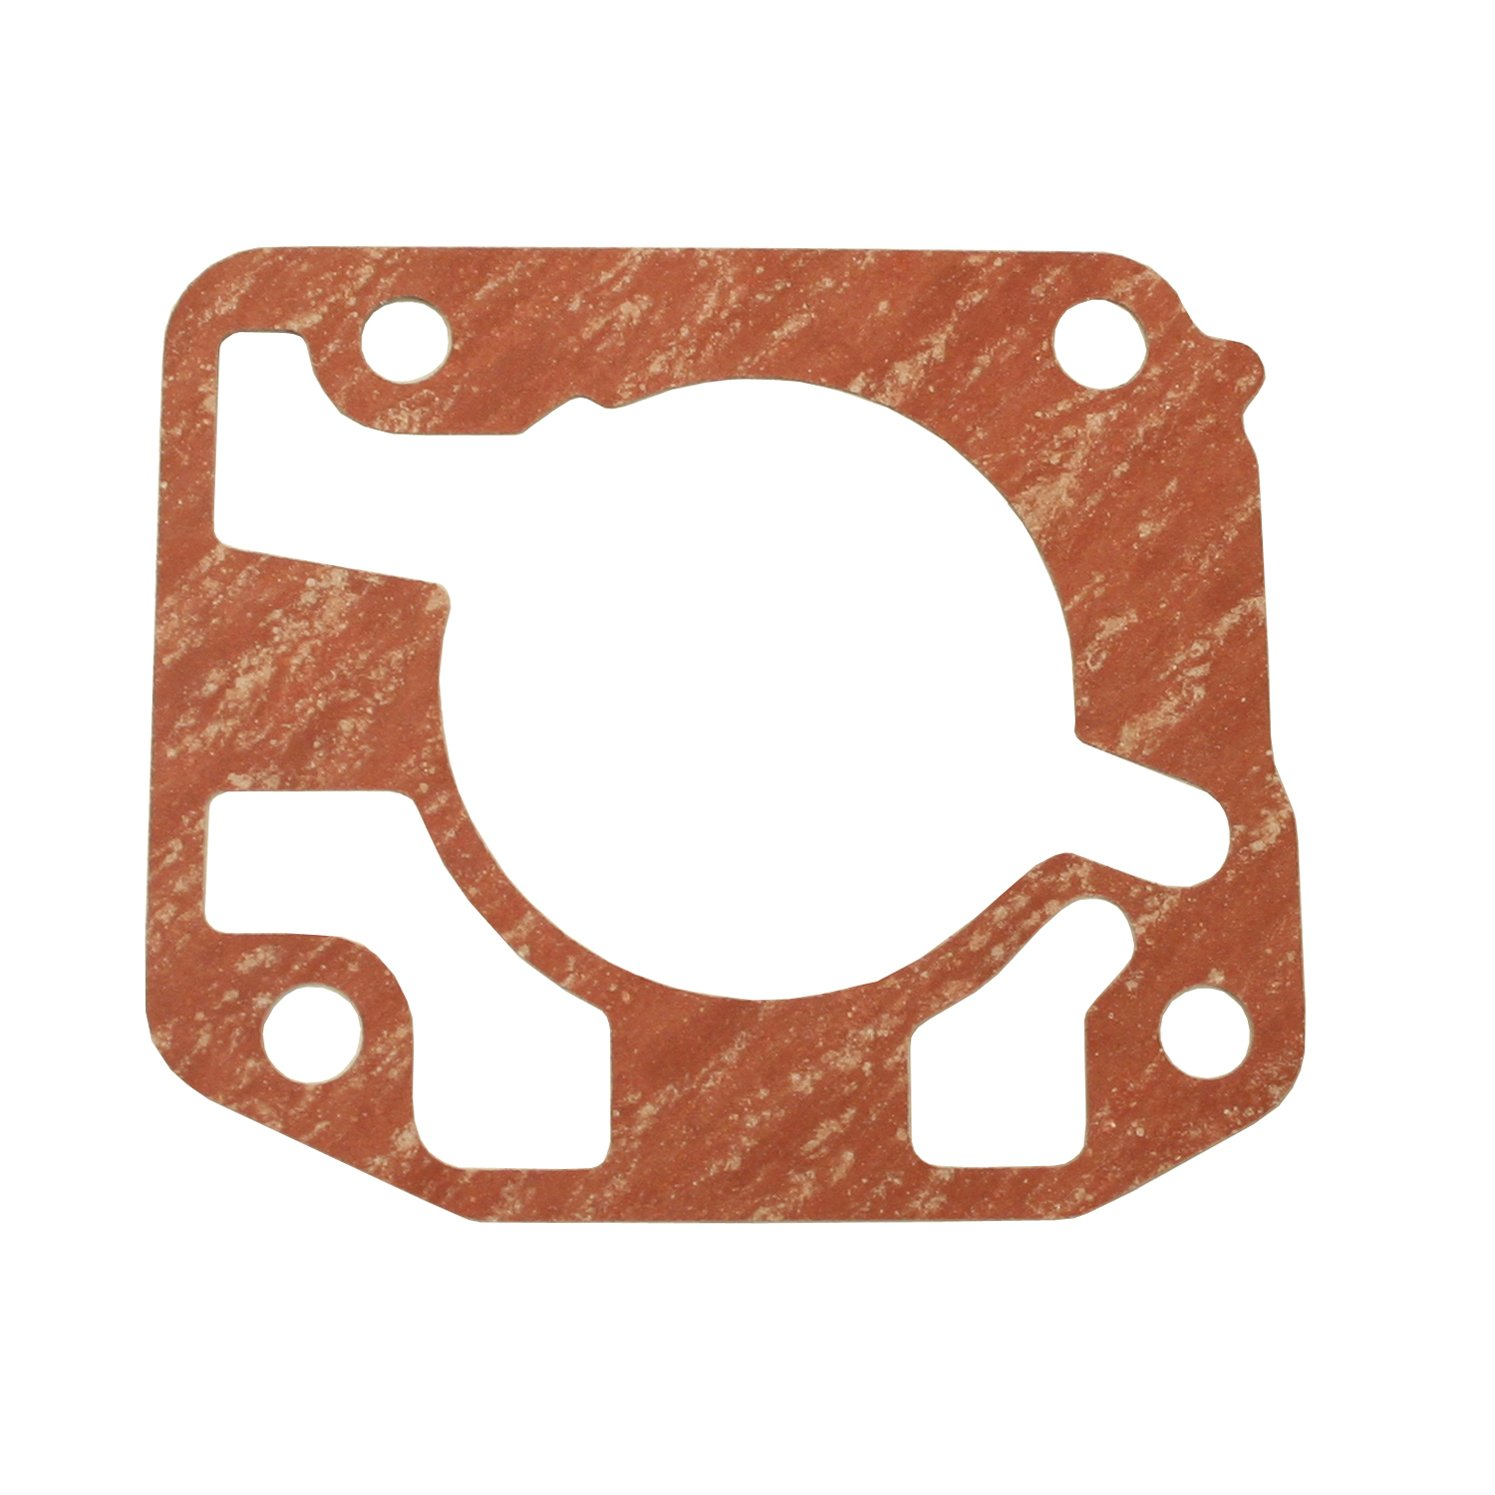 Beck Arnley 039-5005 Throttle Body Gasket BEC039-5005